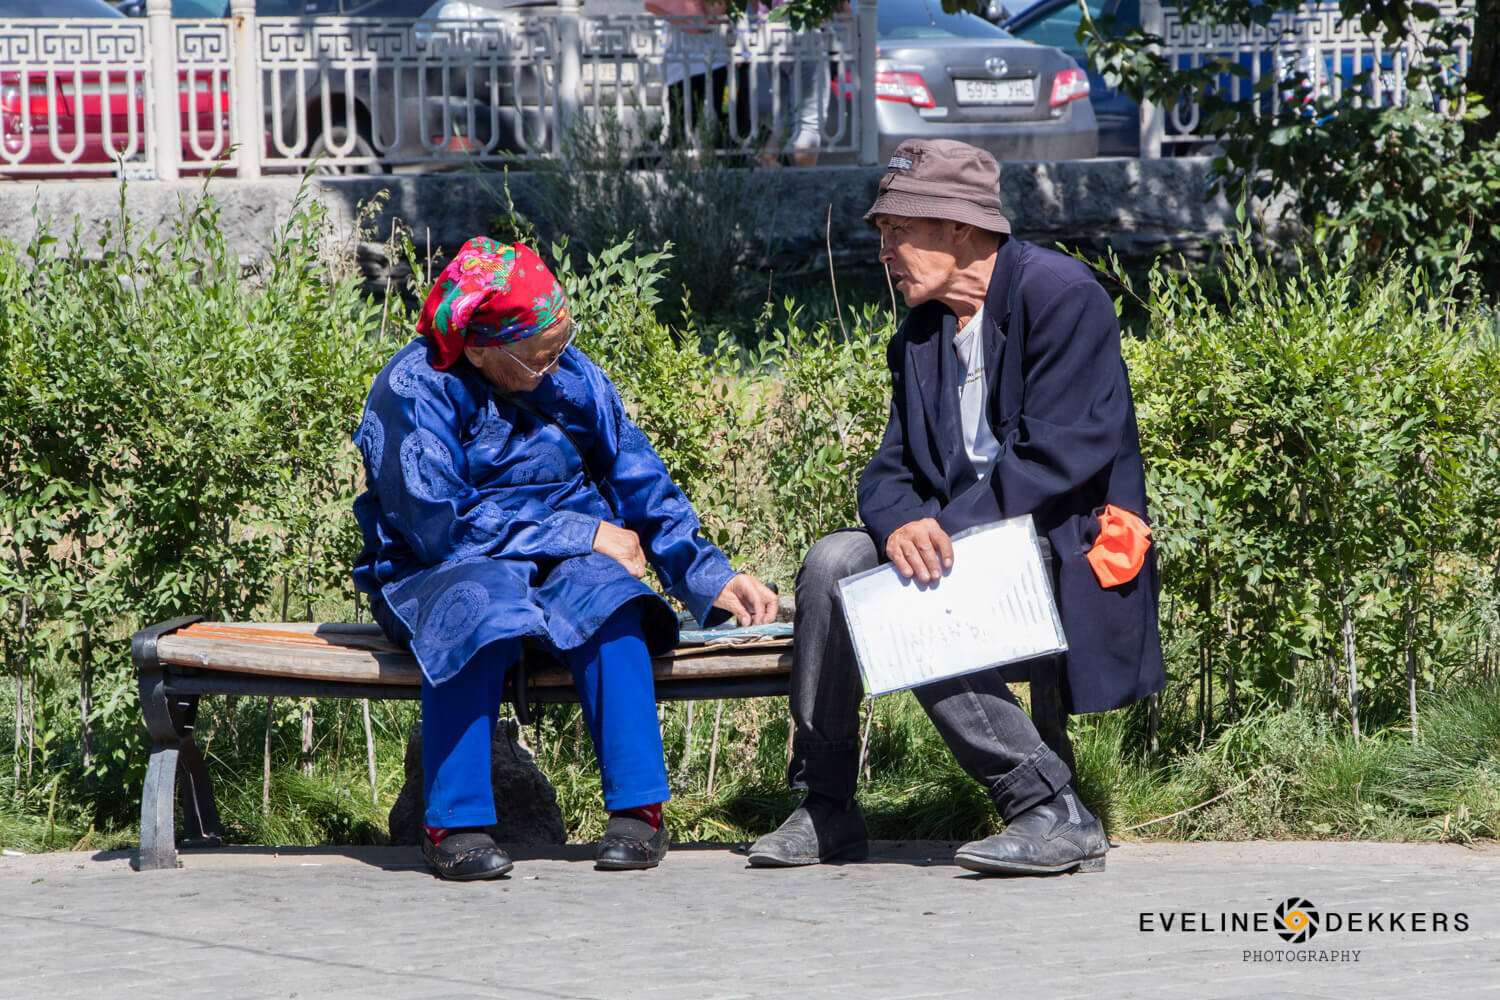 Elderly at Ulaanbaatar bench